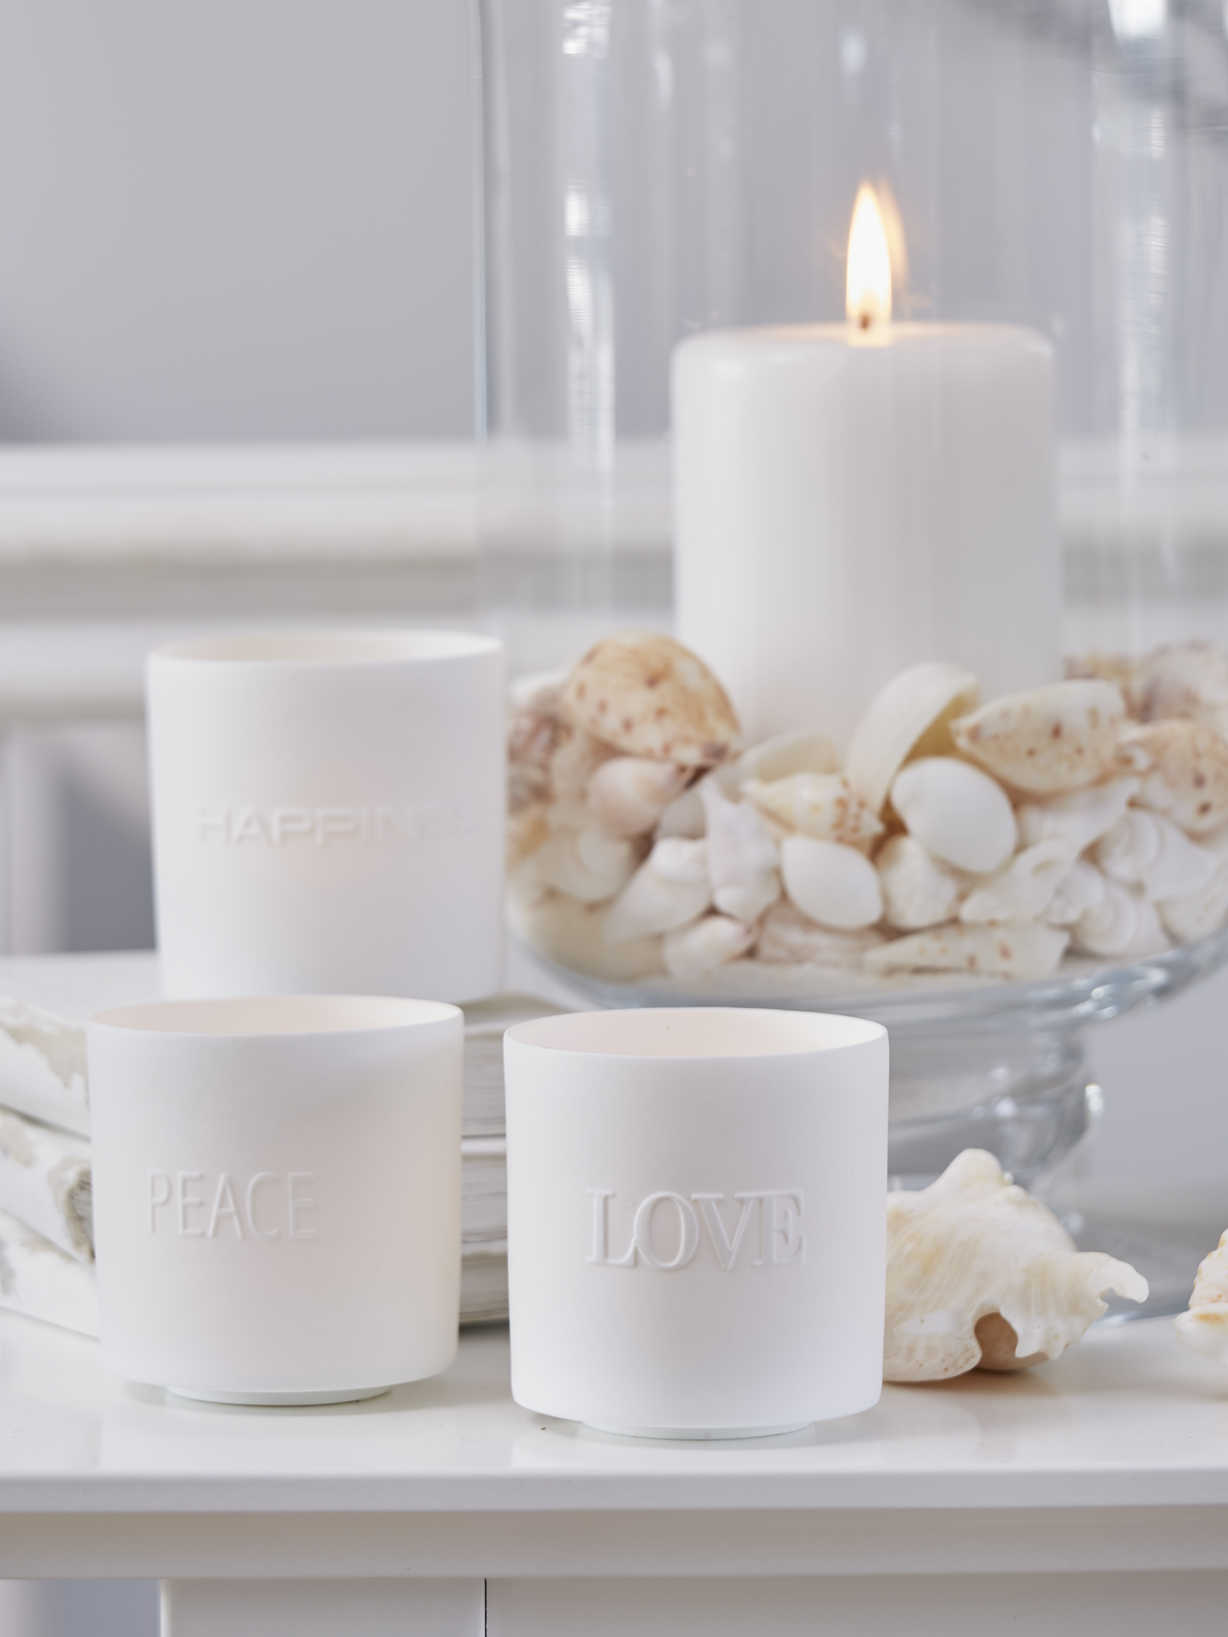 Nordic House Love, Peace & Happiness Tealight Set